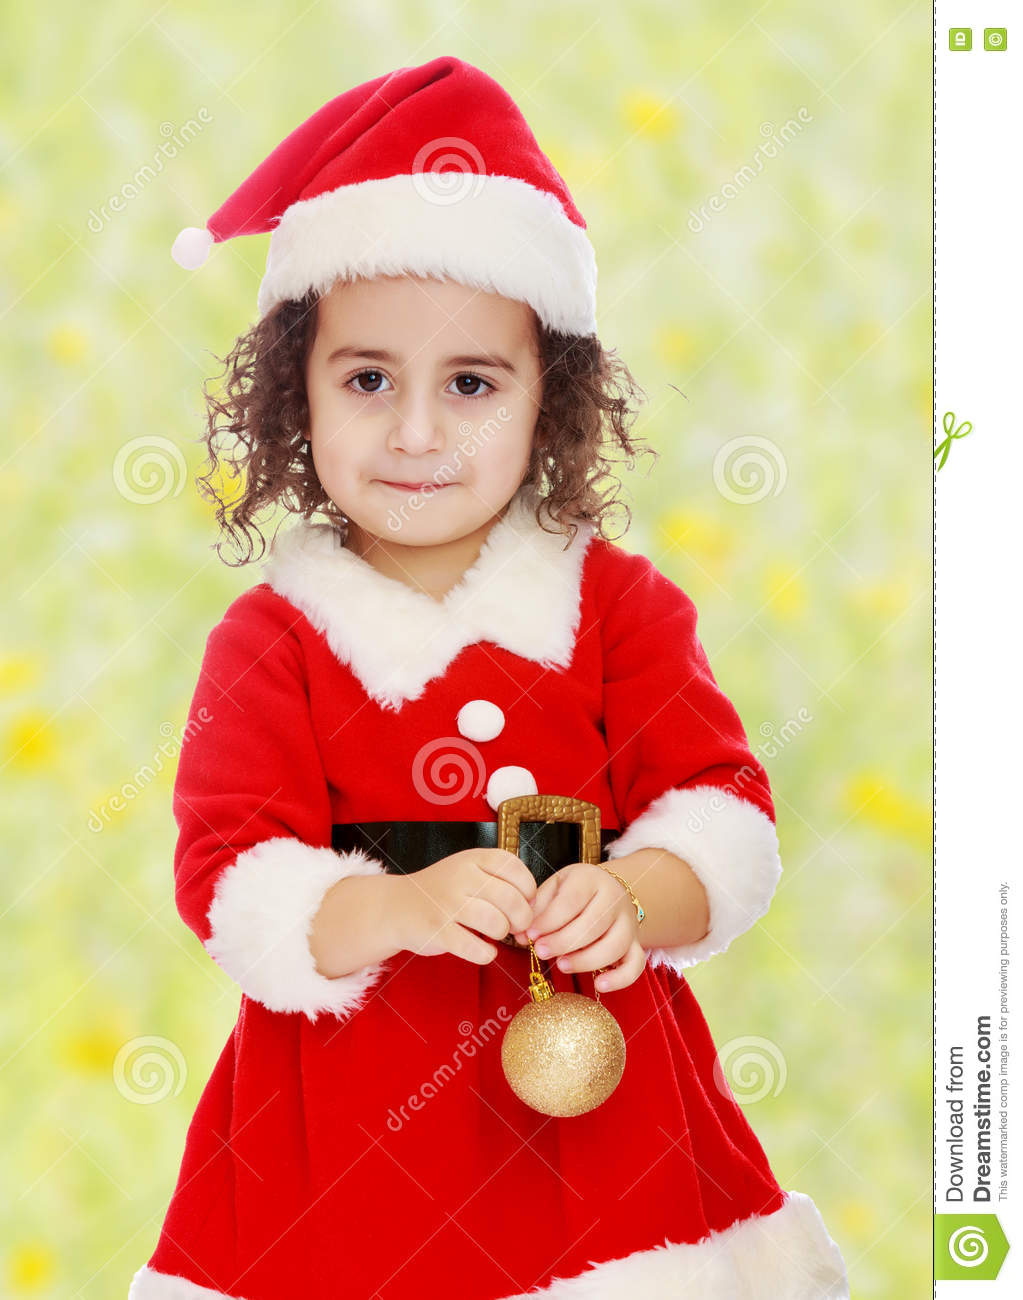 c35f06dc2 little-girl-dressed-as-santa-claus-very-cute-curly-hair-suit-cap-holding- christmas-toy-close-up-bright-78403538.jpg